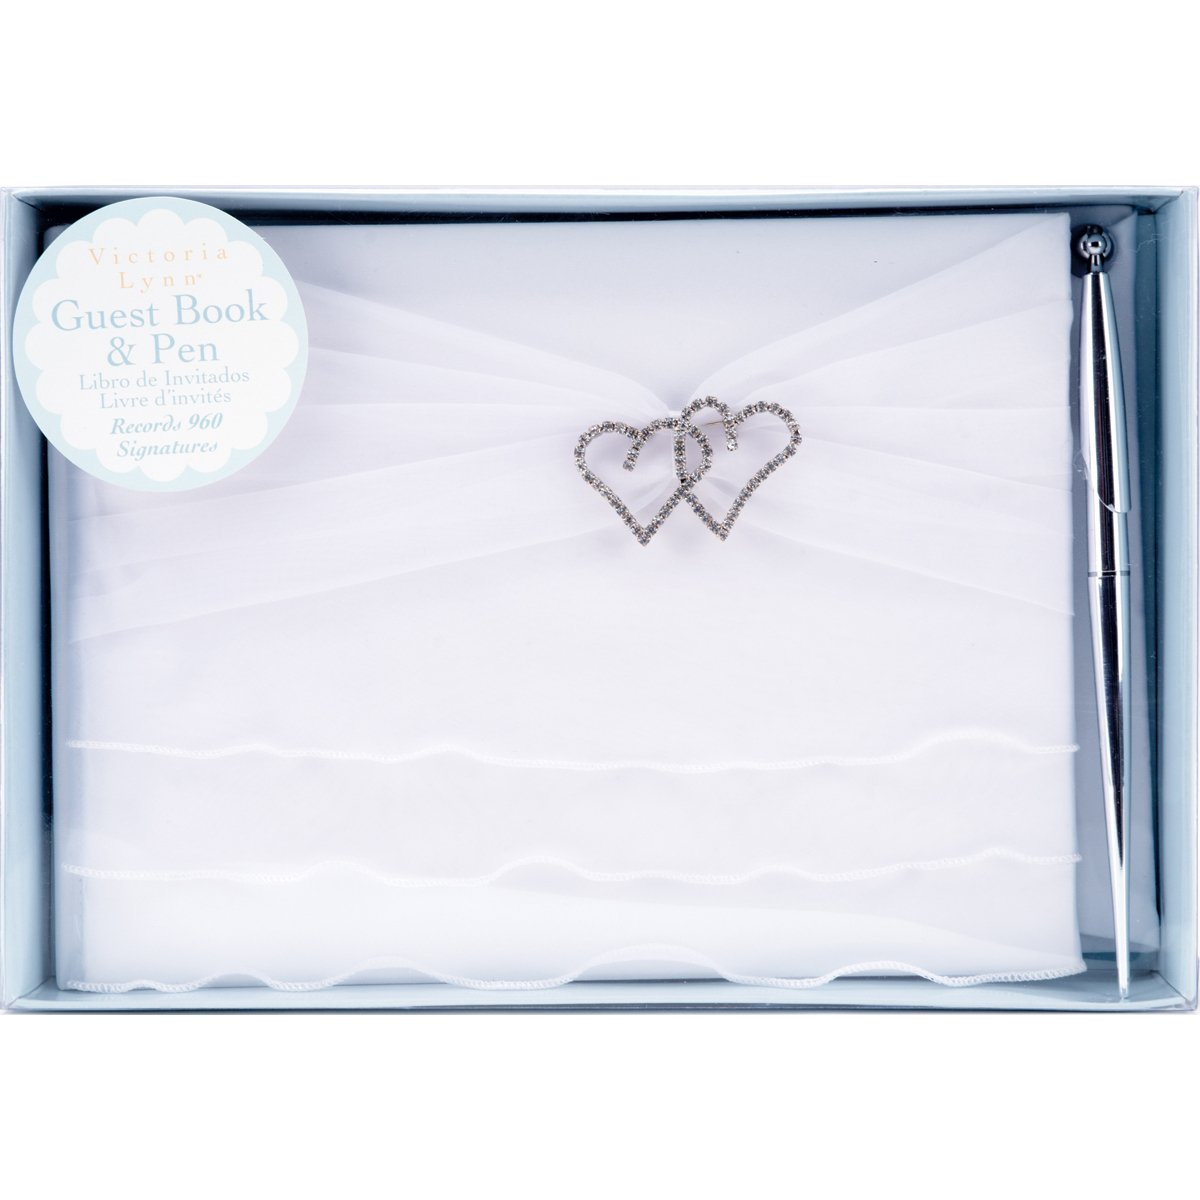 Darice Victoria Lynn Guest Book Set with Pen 6 X 9 Inches White Organza Ruffle (6 Pack)